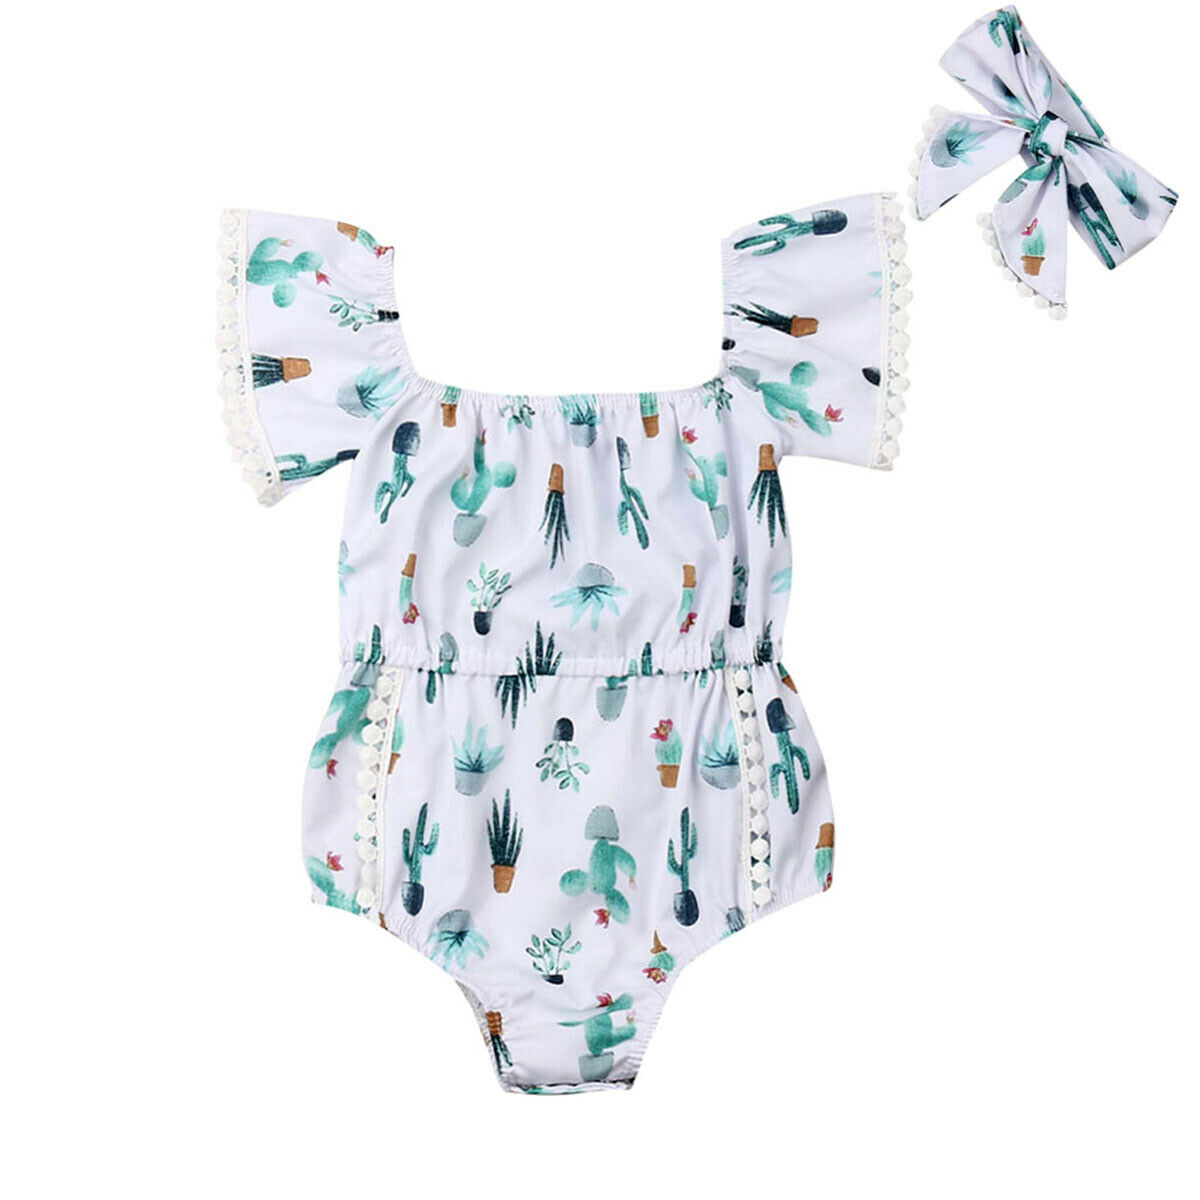 2019 Newest Casual Newborn Baby Girl Clothes Kid Off Shoulder Flying Sleeve Cactus Body   Romper   Jumpsuit Sunsuit Headband Set